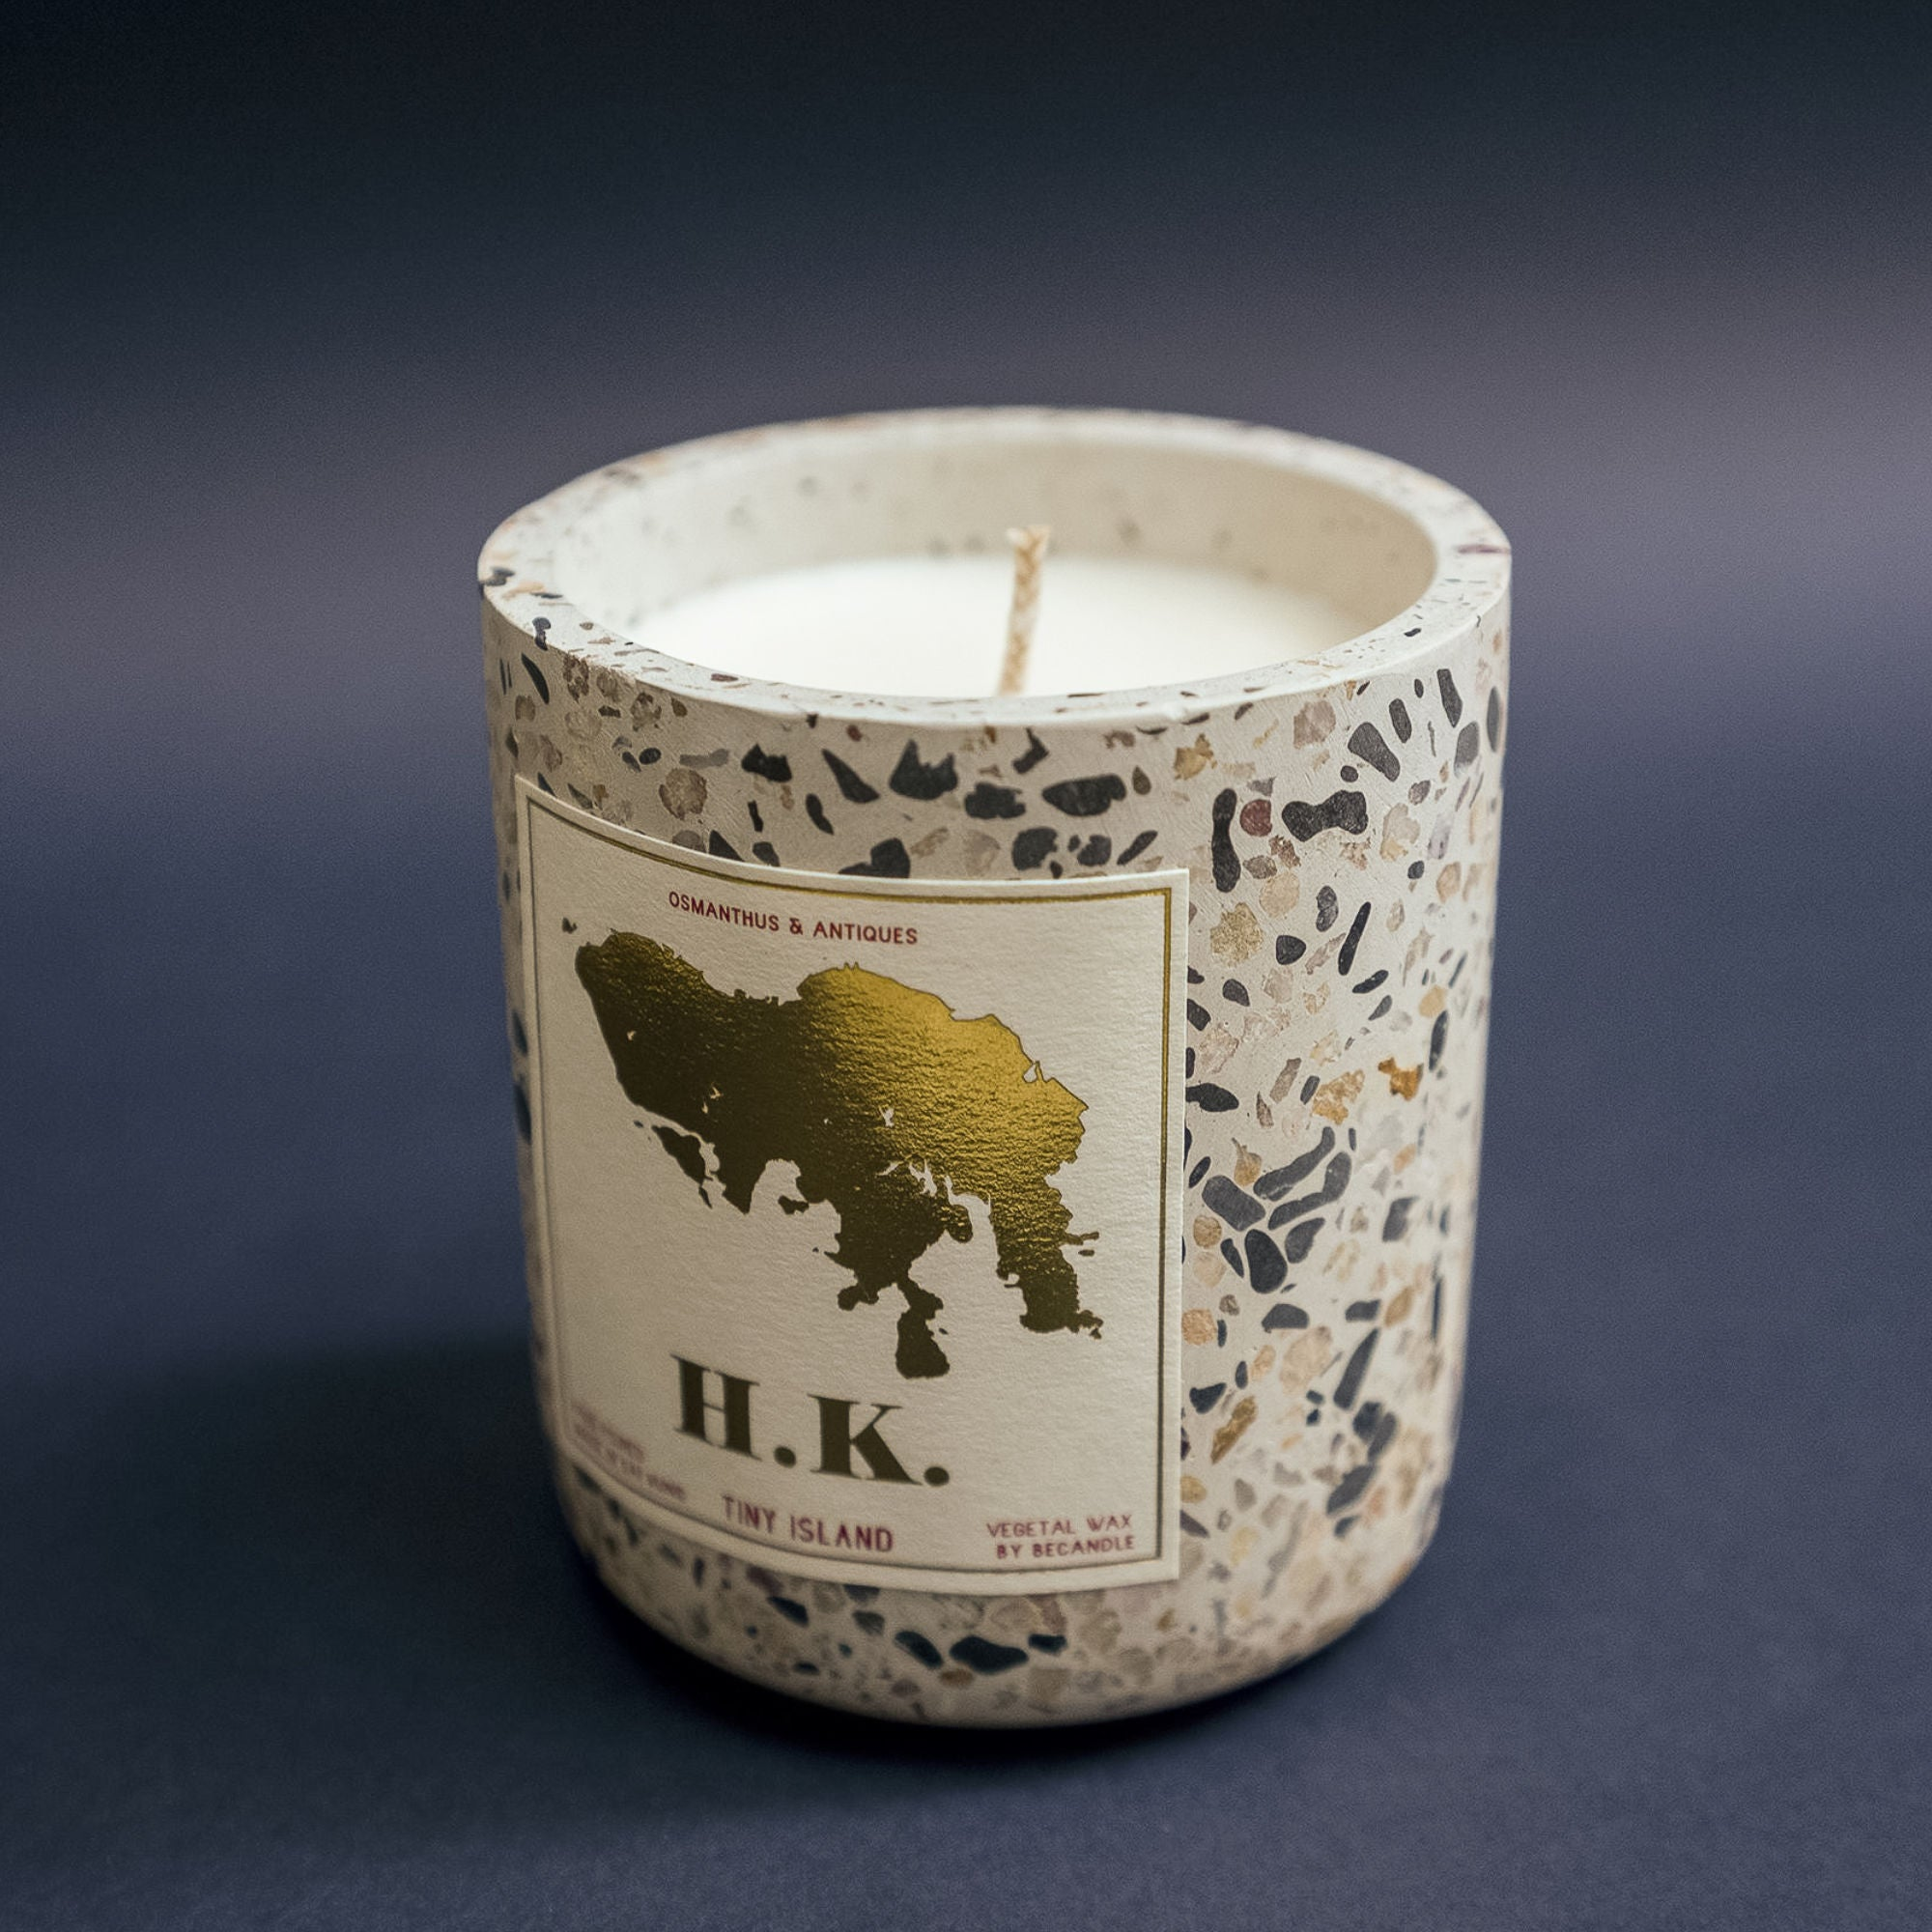 Tiny Island Hong Kong Scented Candle